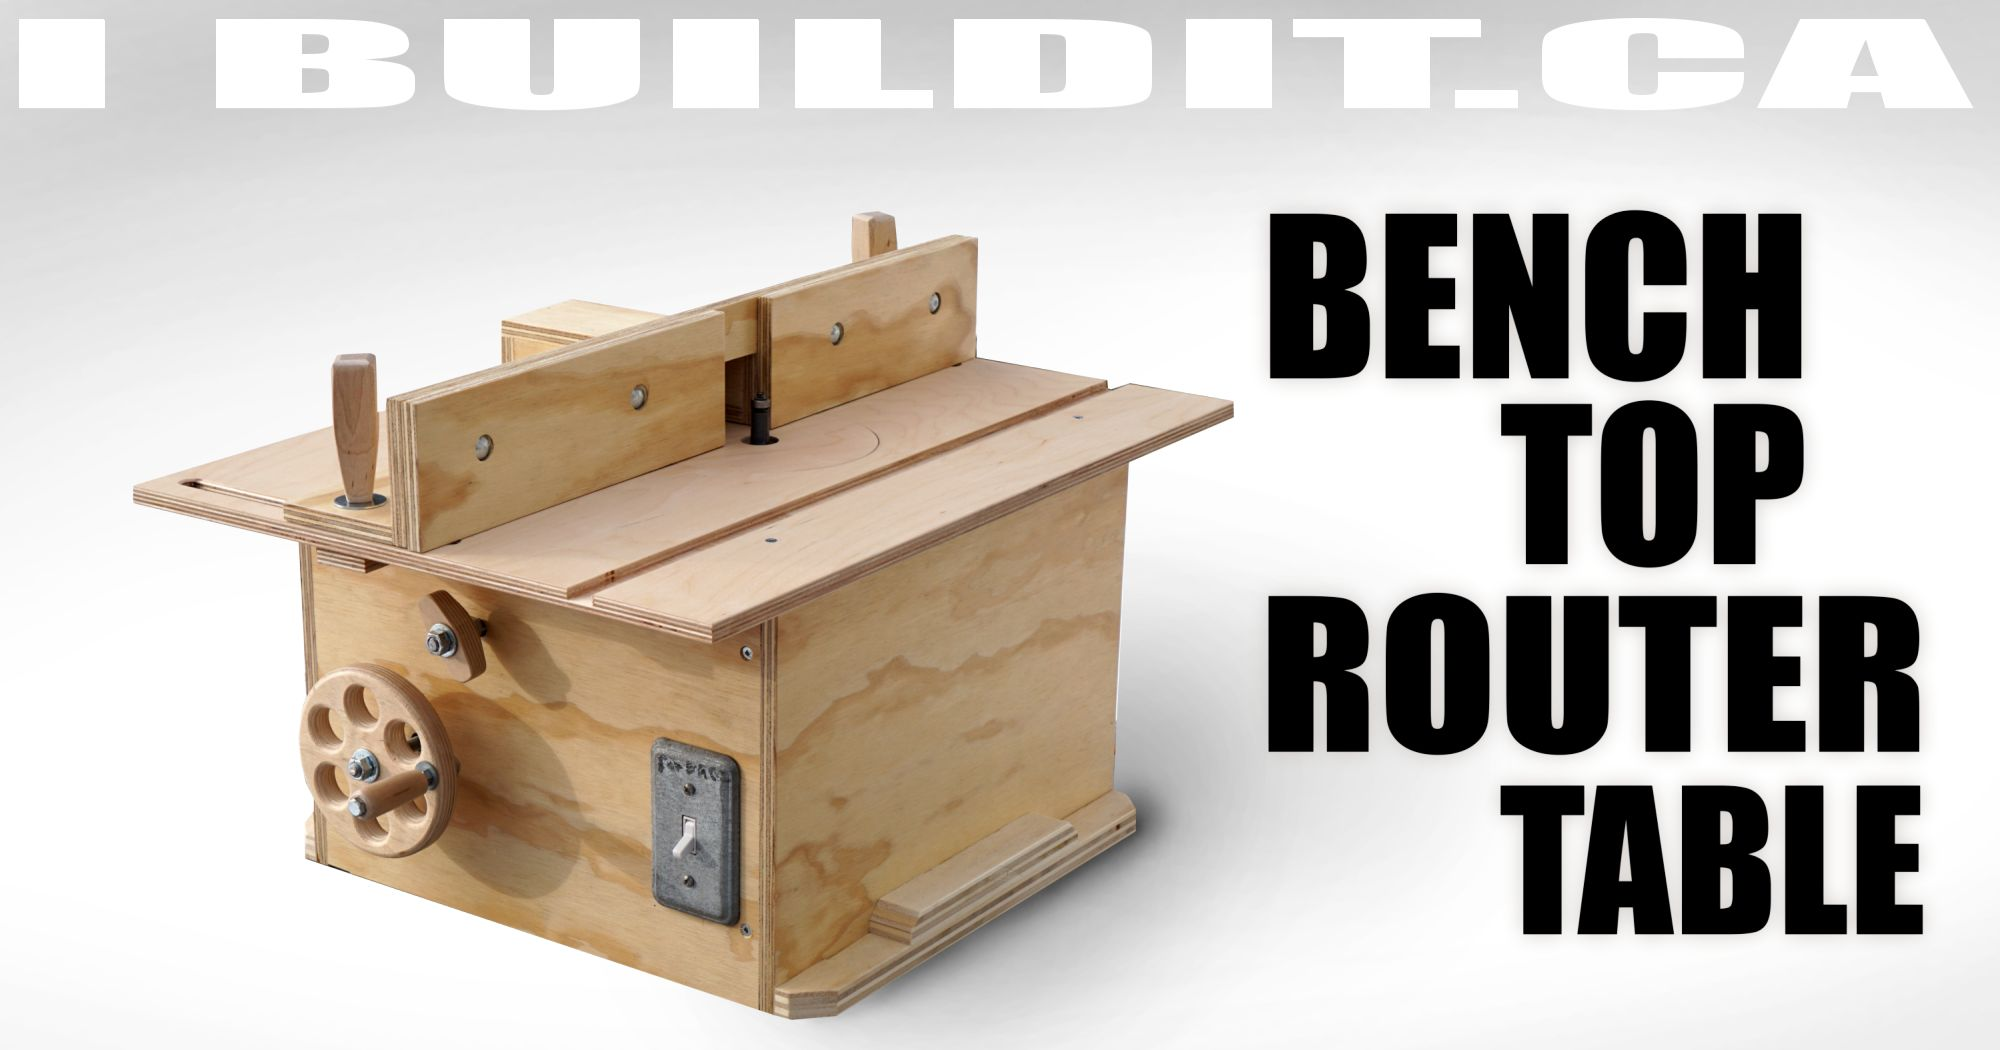 Making A Bench Top Router Table Ibuildit Ca